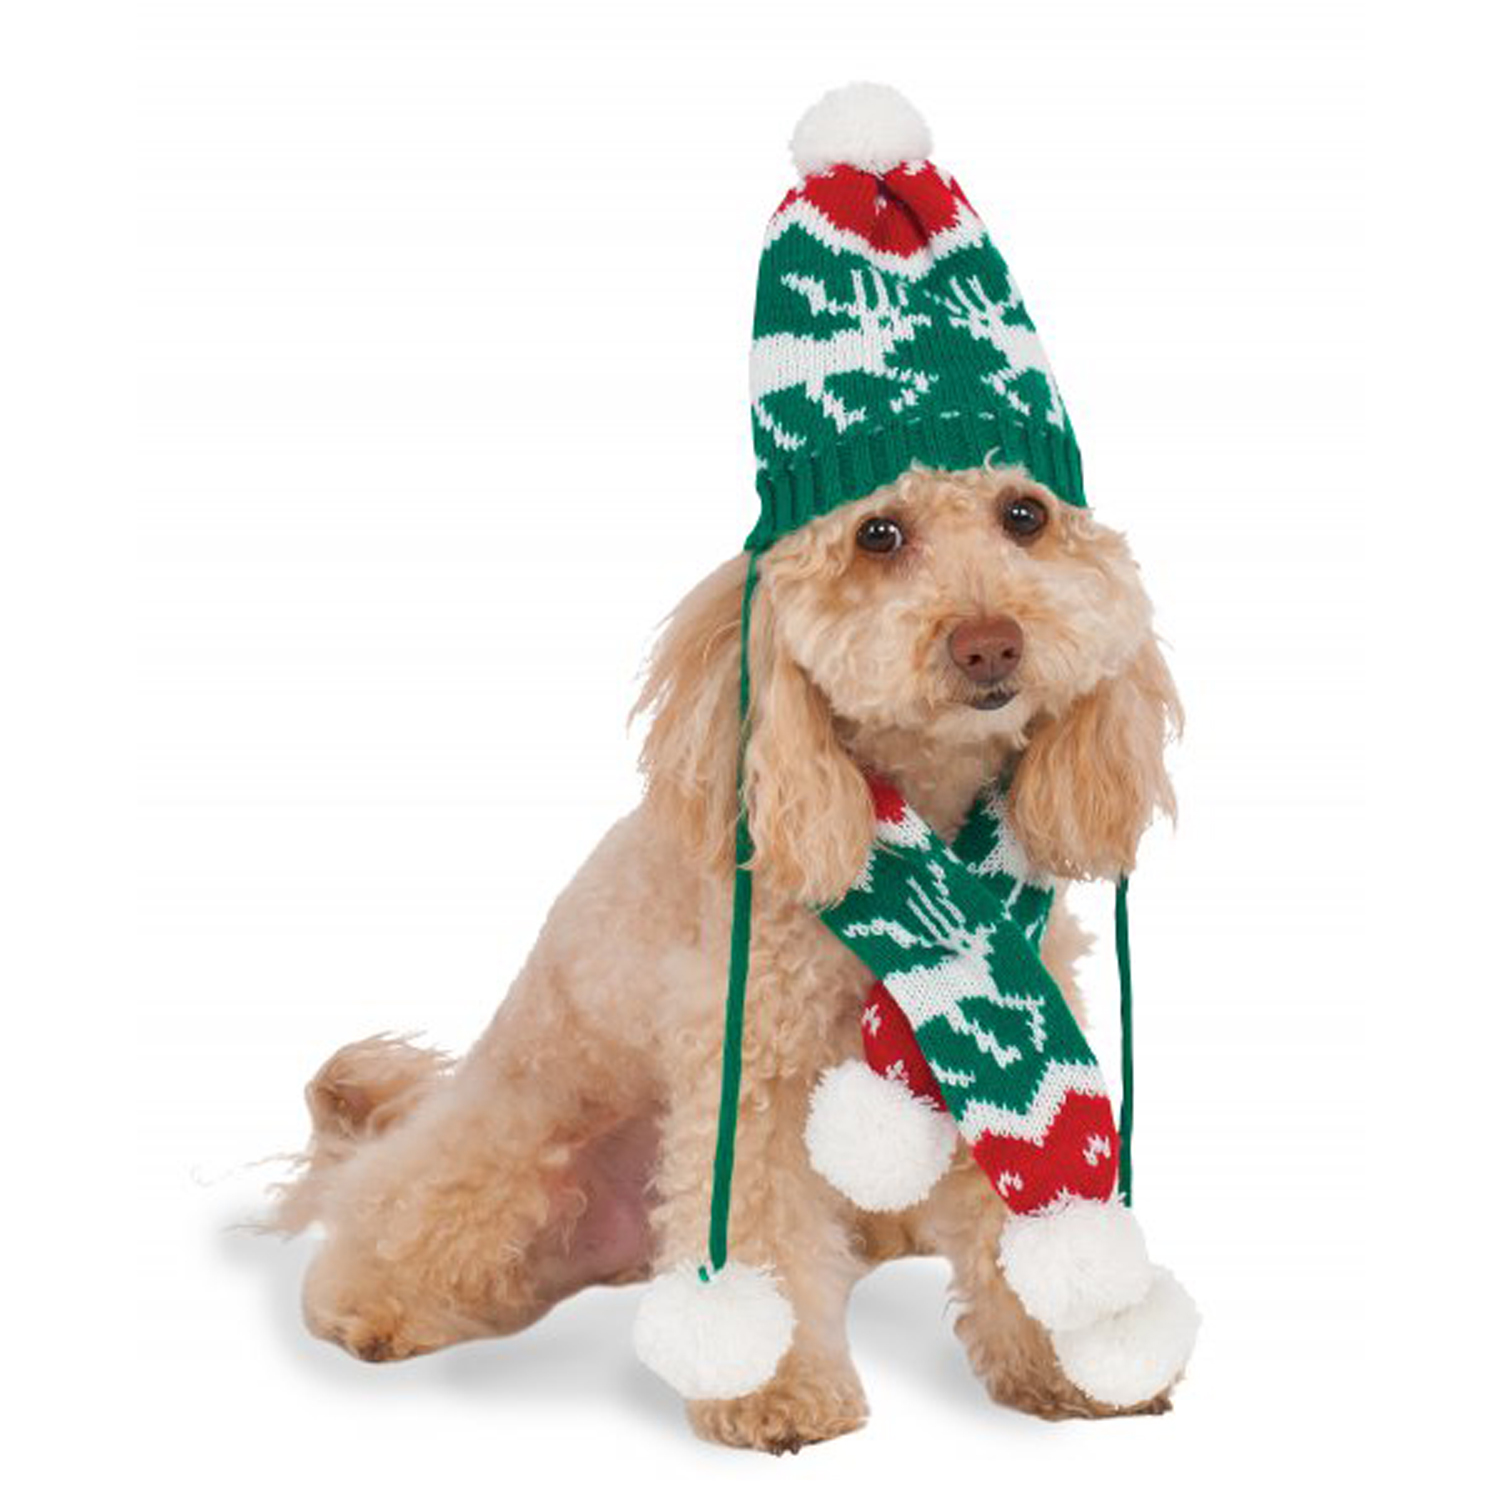 aa95f3479e5 Rubies Holiday Knit Dog Hat and Scarf Set